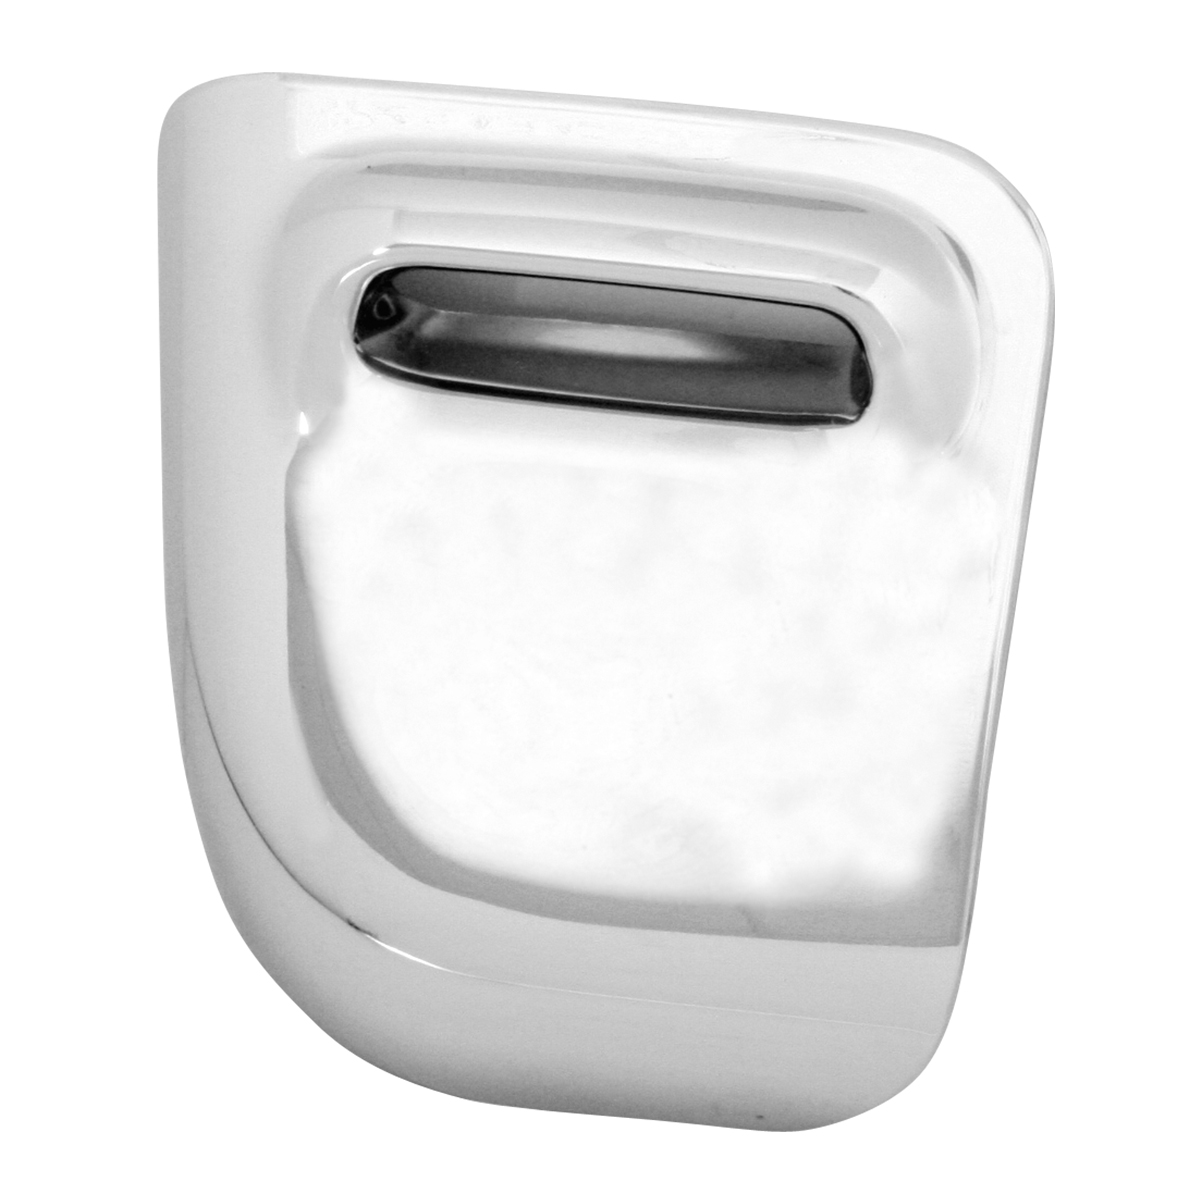 52009 Ash Tray Cover for Peterbilt 2006 & Later